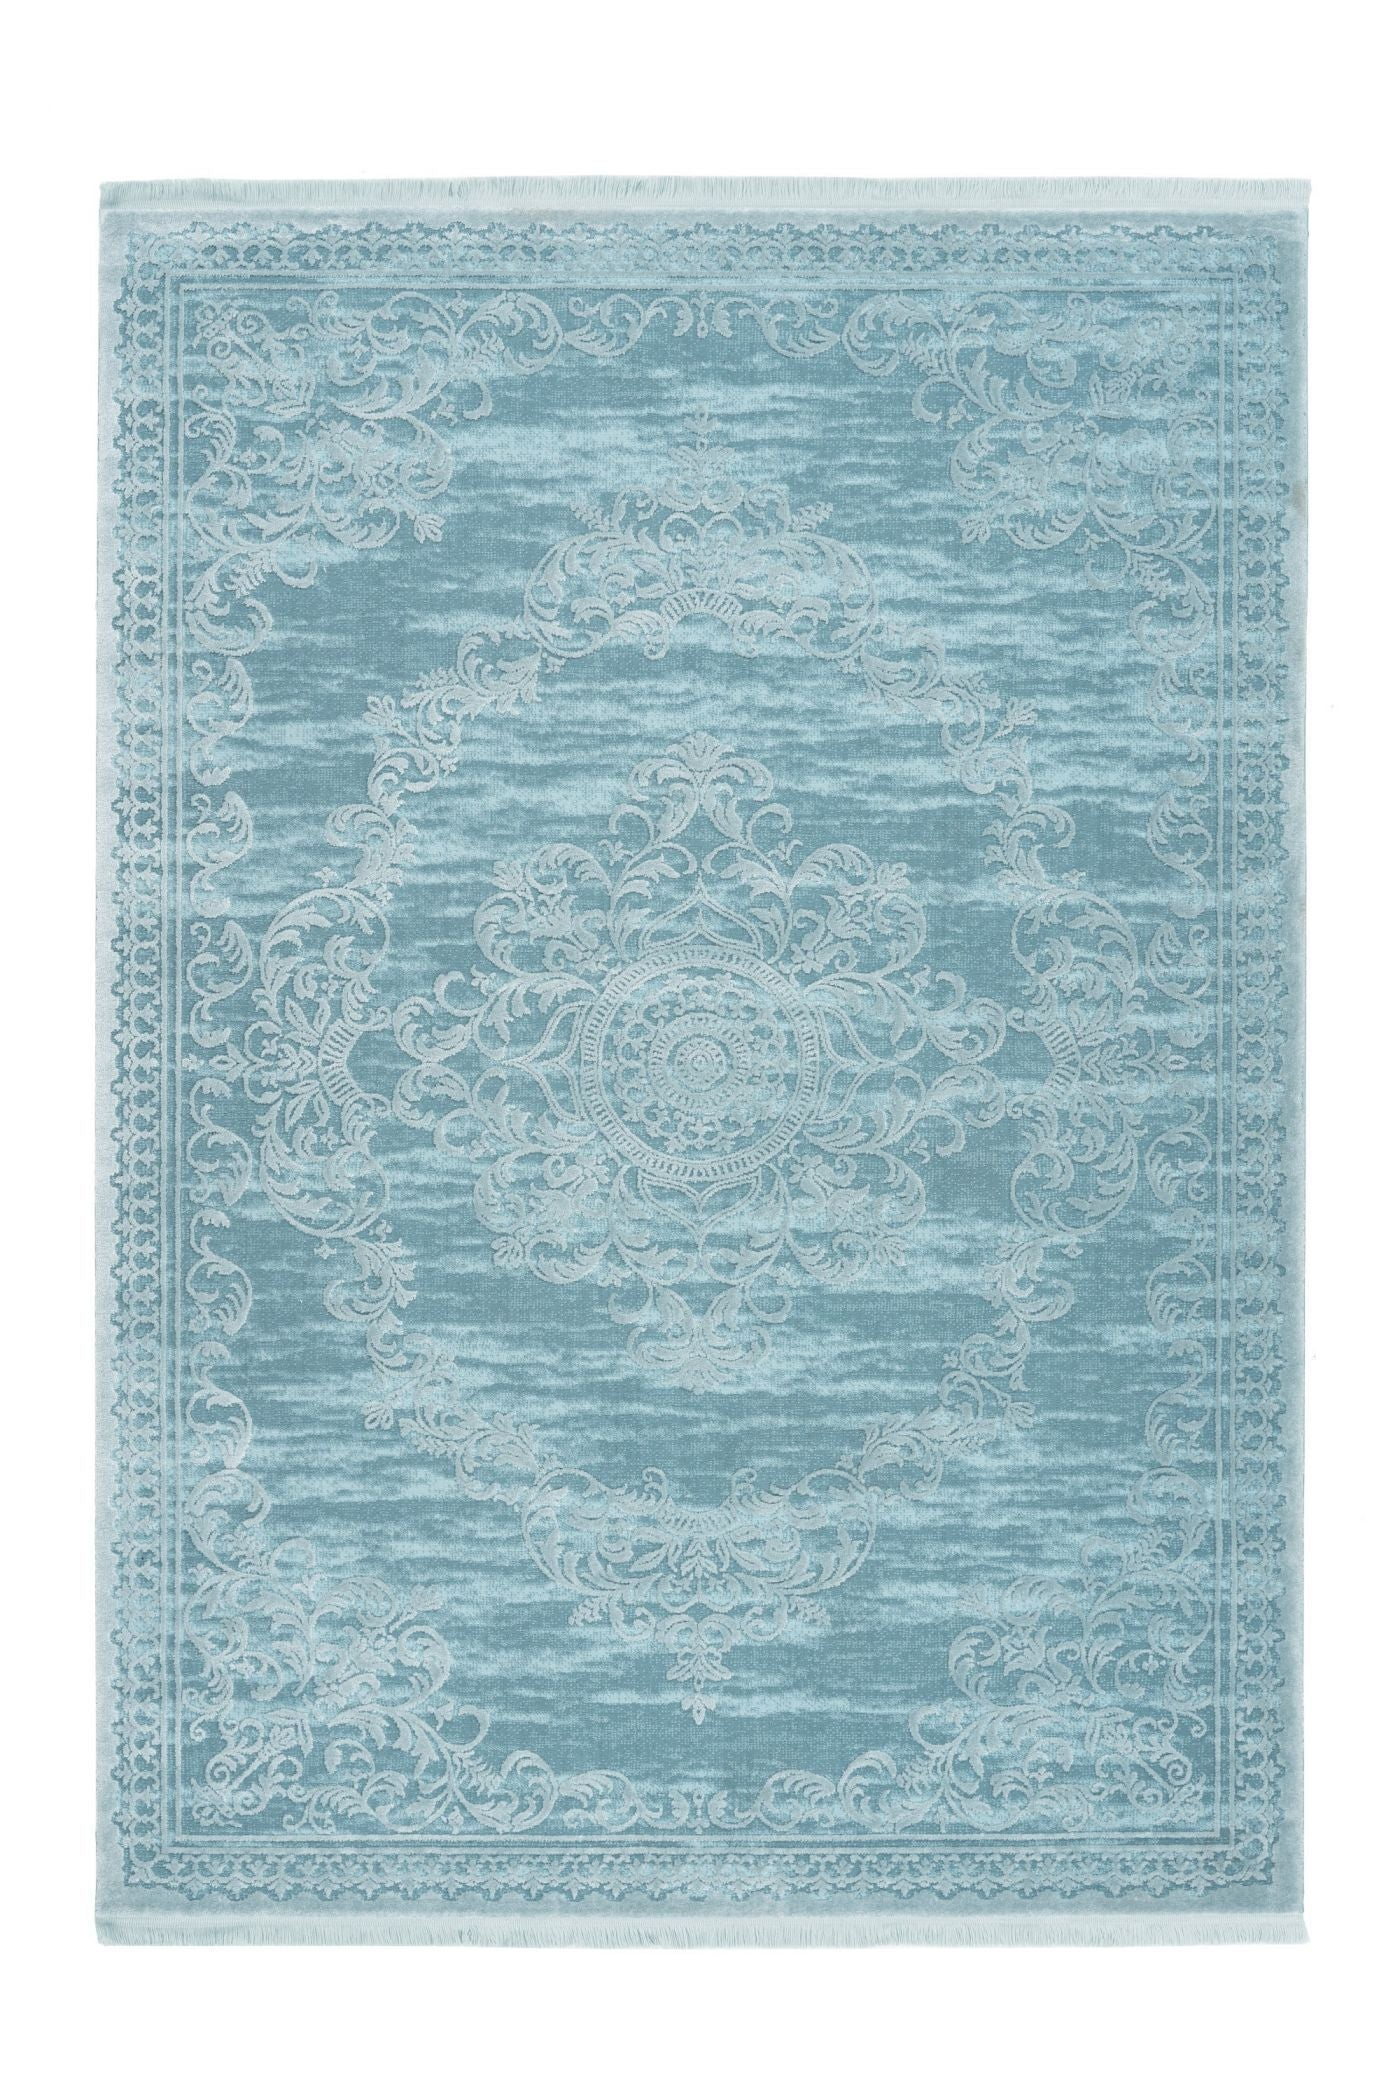 Aleyna 601 Turquoise Traditional/Modern Rug With Centre Medallion - Lalee Designer Rugs